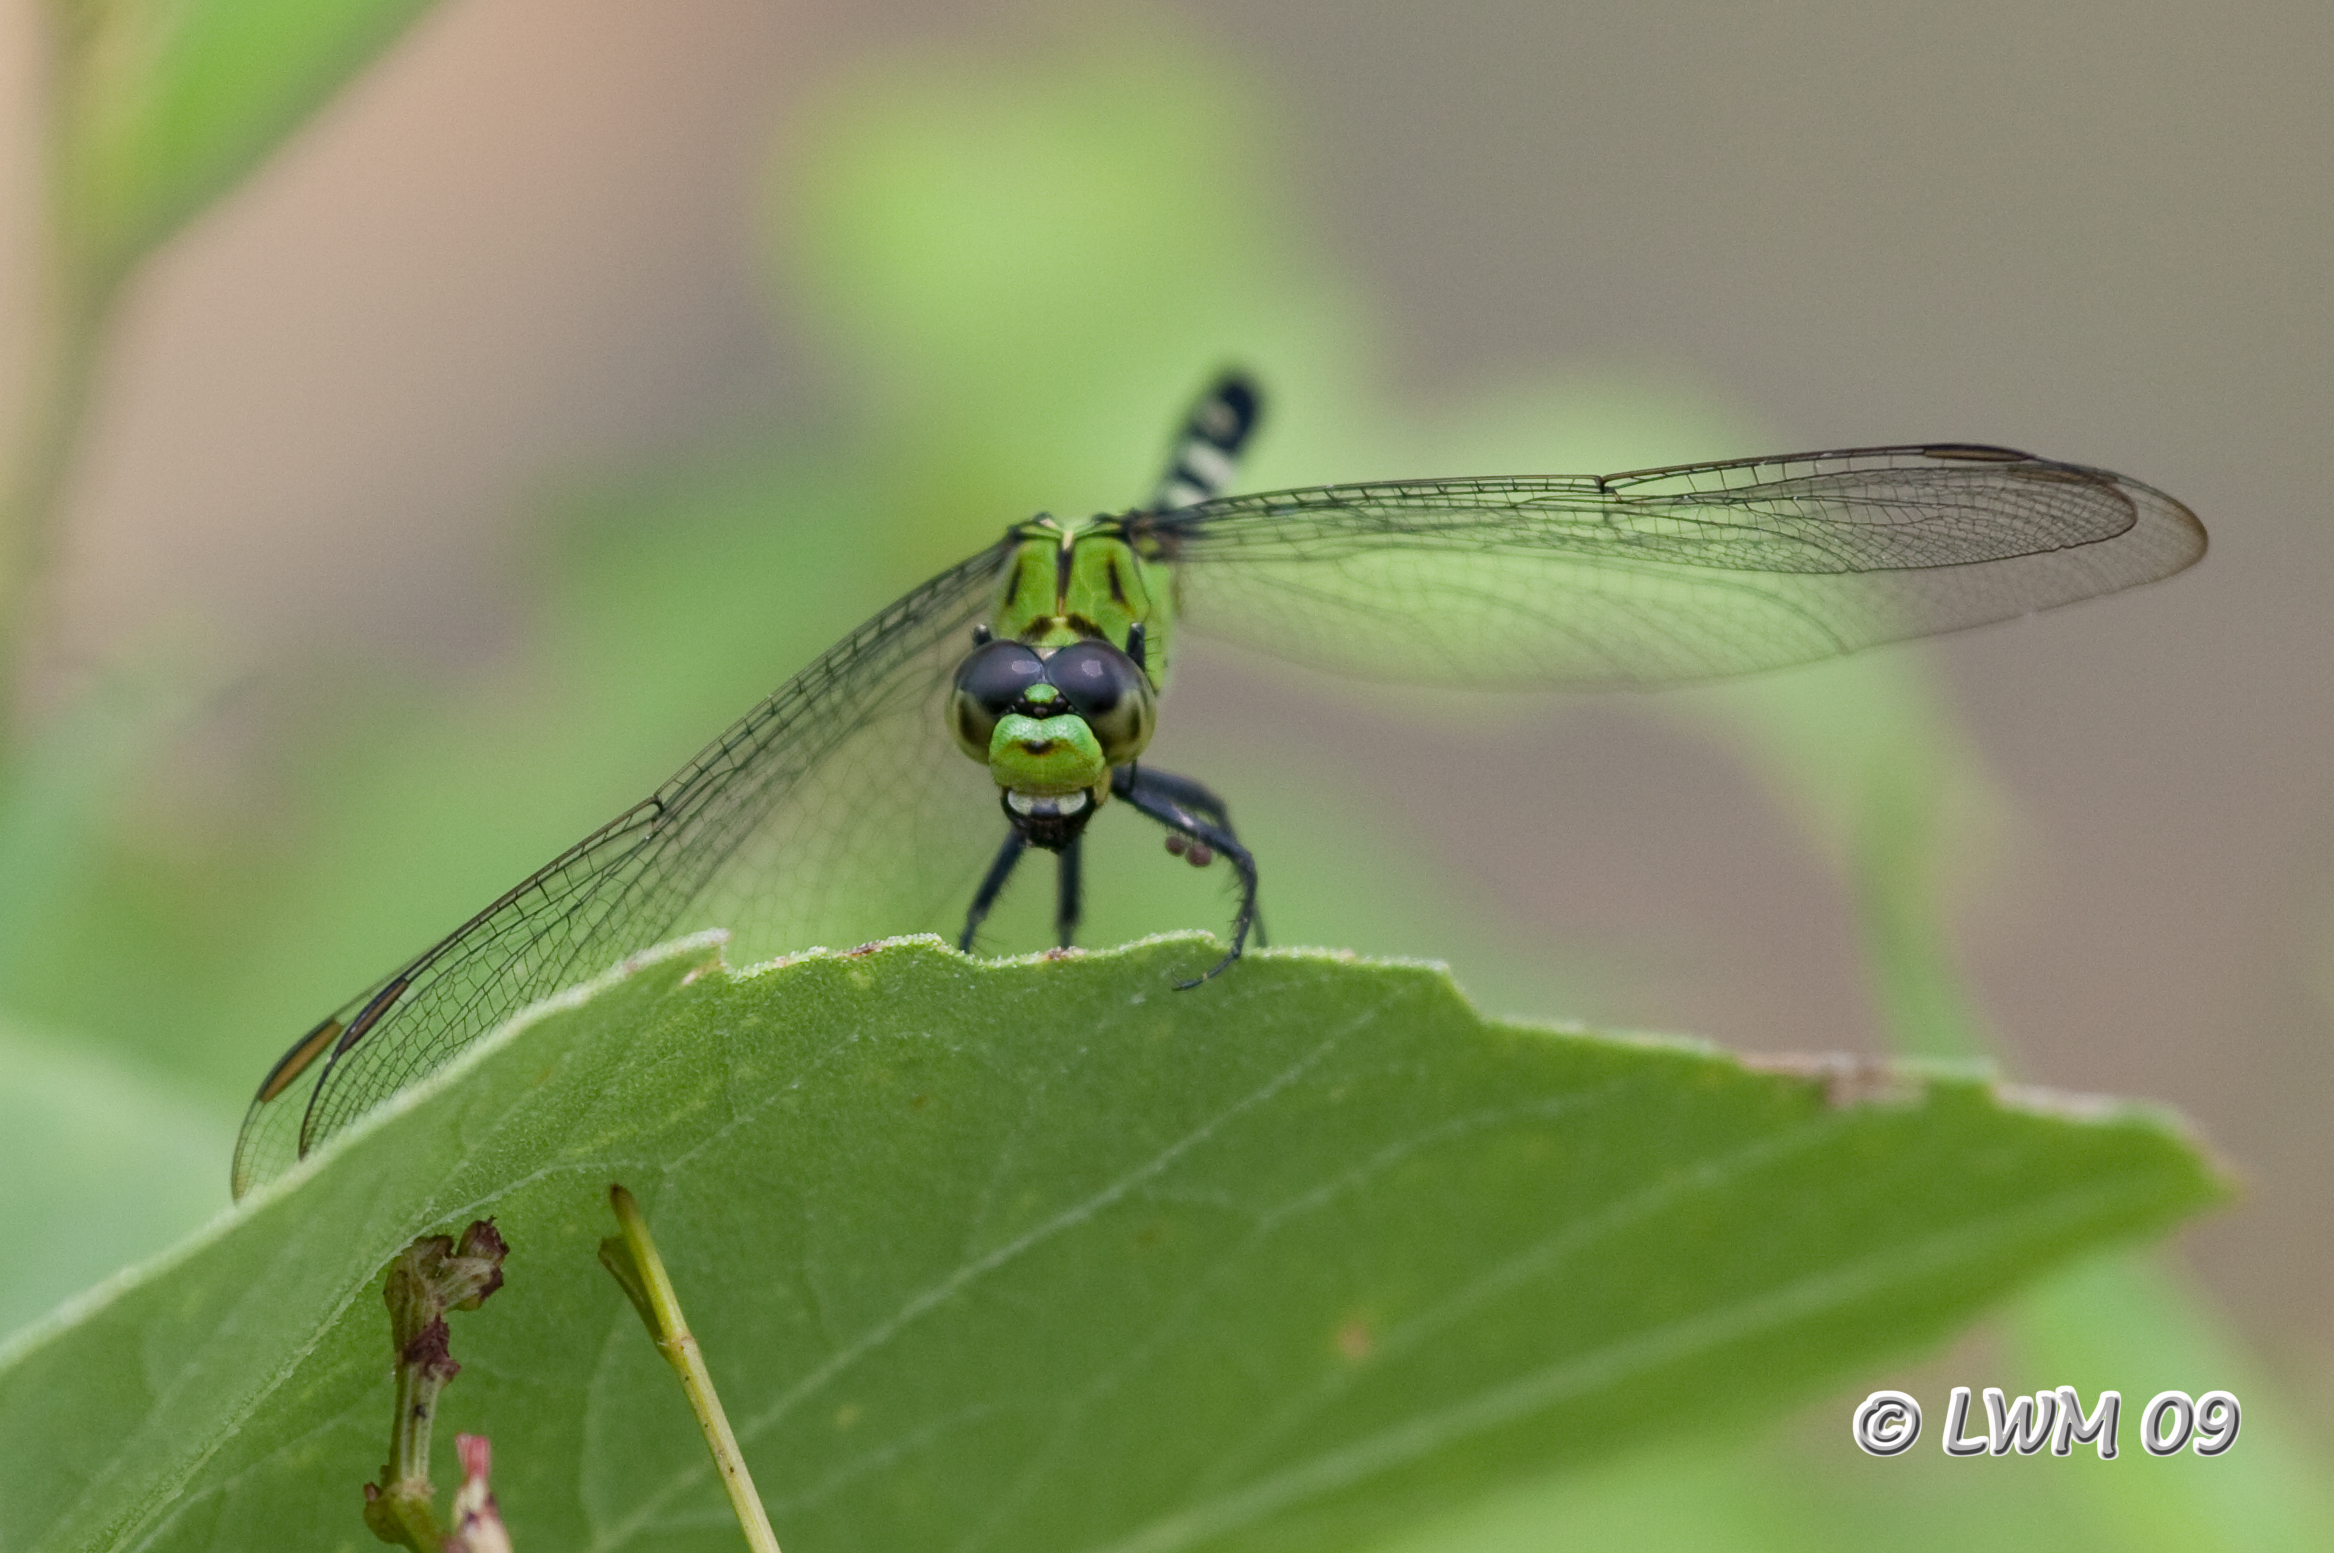 Green dragonfly pictures - photo#19